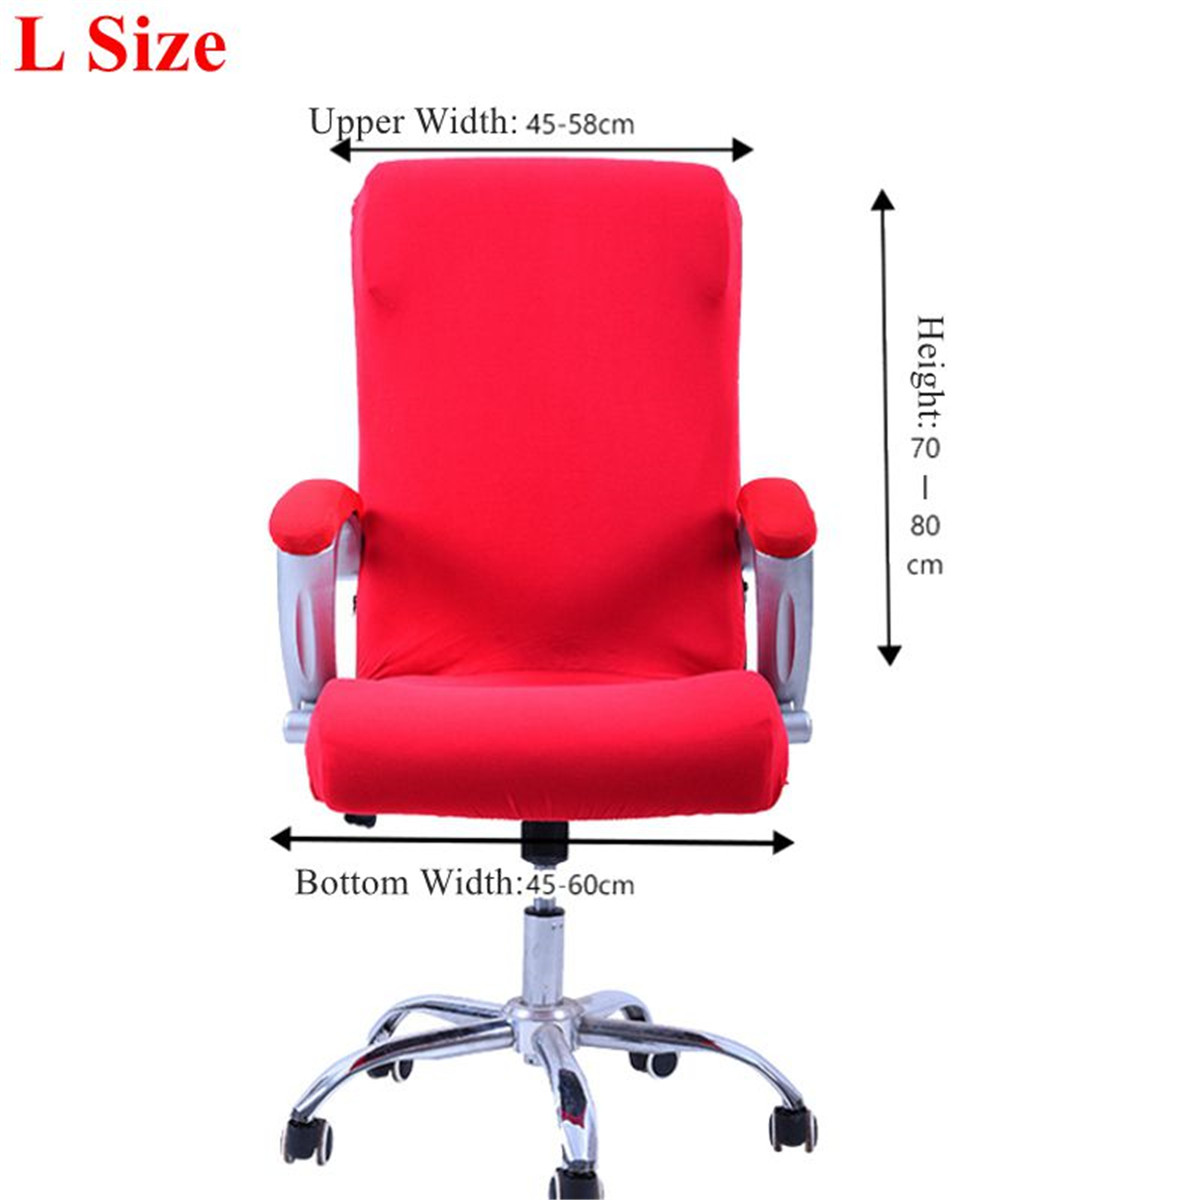 swivel chair covers ergonomic for lower back pain stretch elastic office computer slip